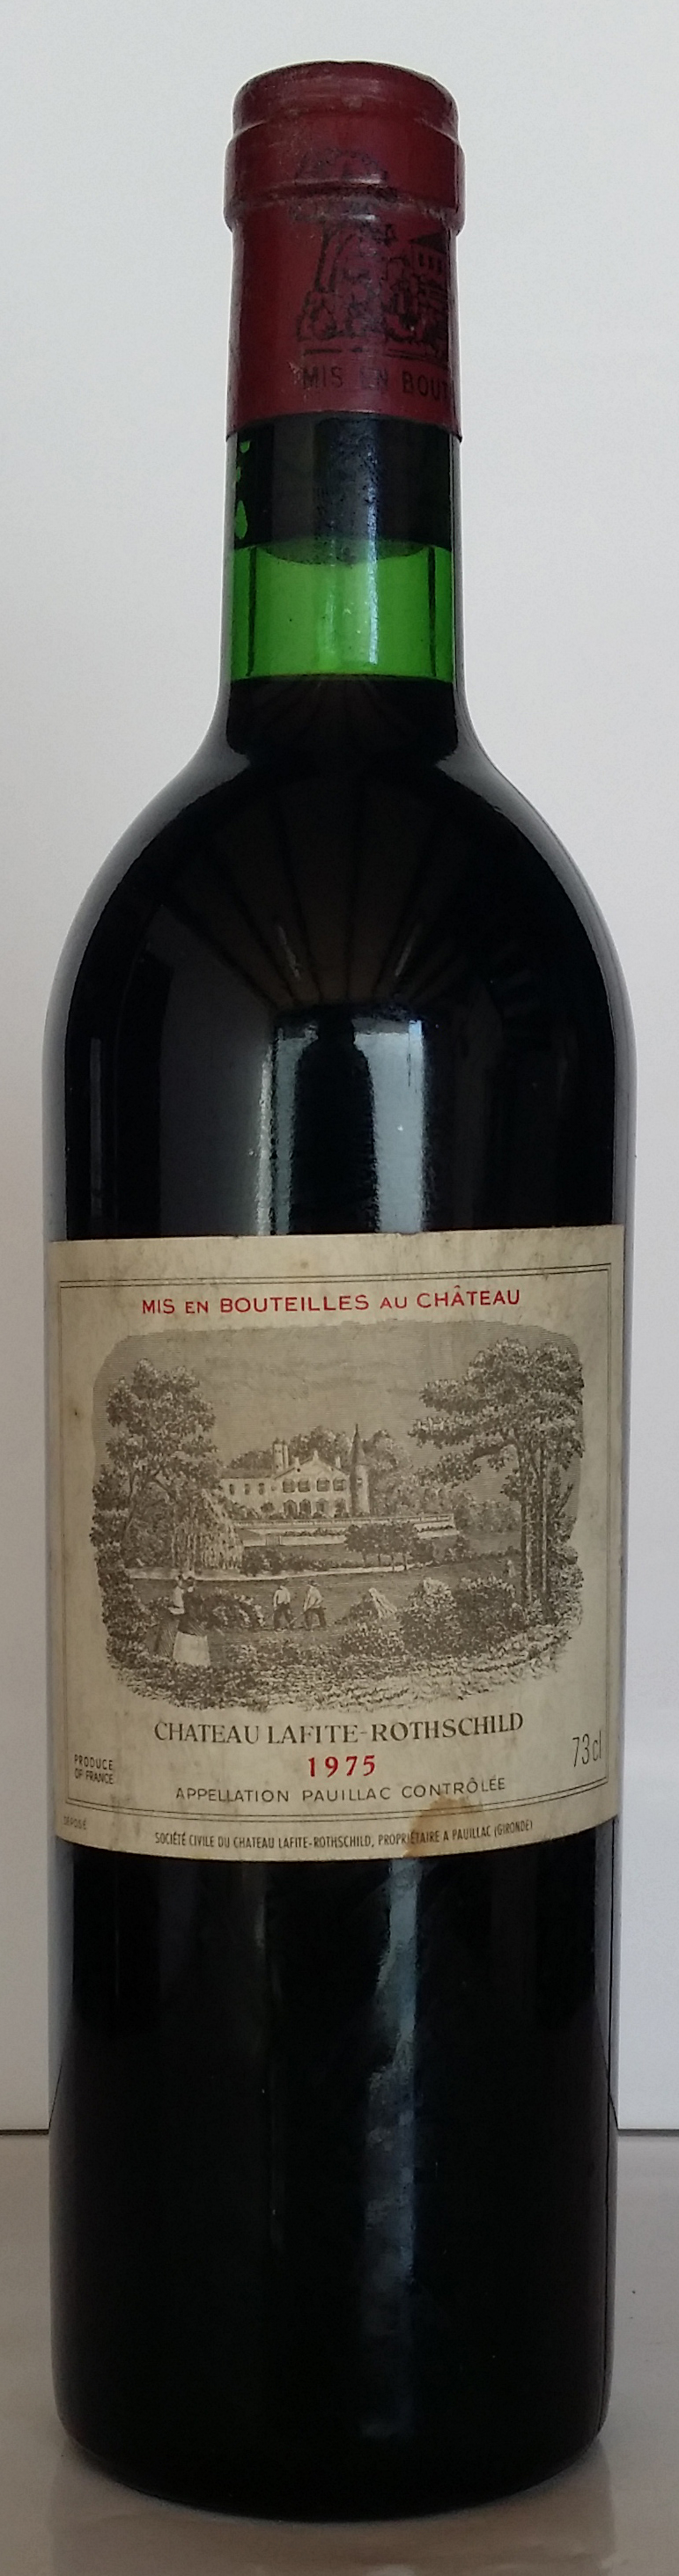 1975 Domaines Barons de Rothschild Chateau Lafite Rothschild